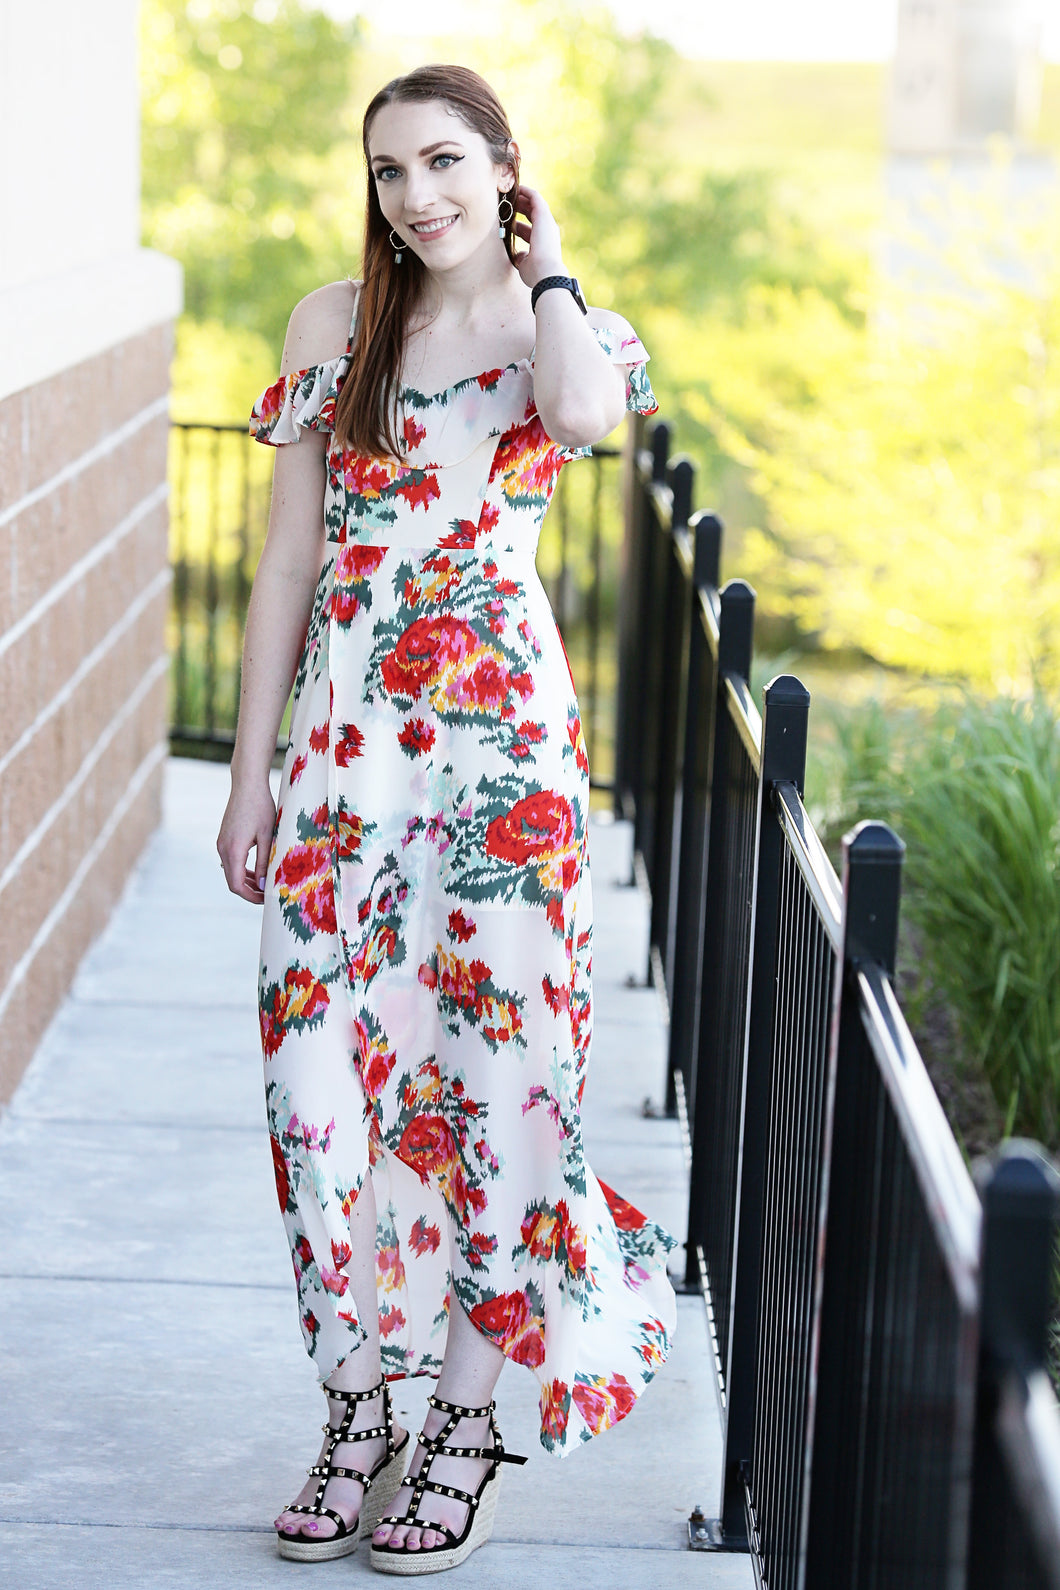 Brea Floral Tulip Neckline Maxi Dress - Moxie a sass + class boutique | Wichita, KS